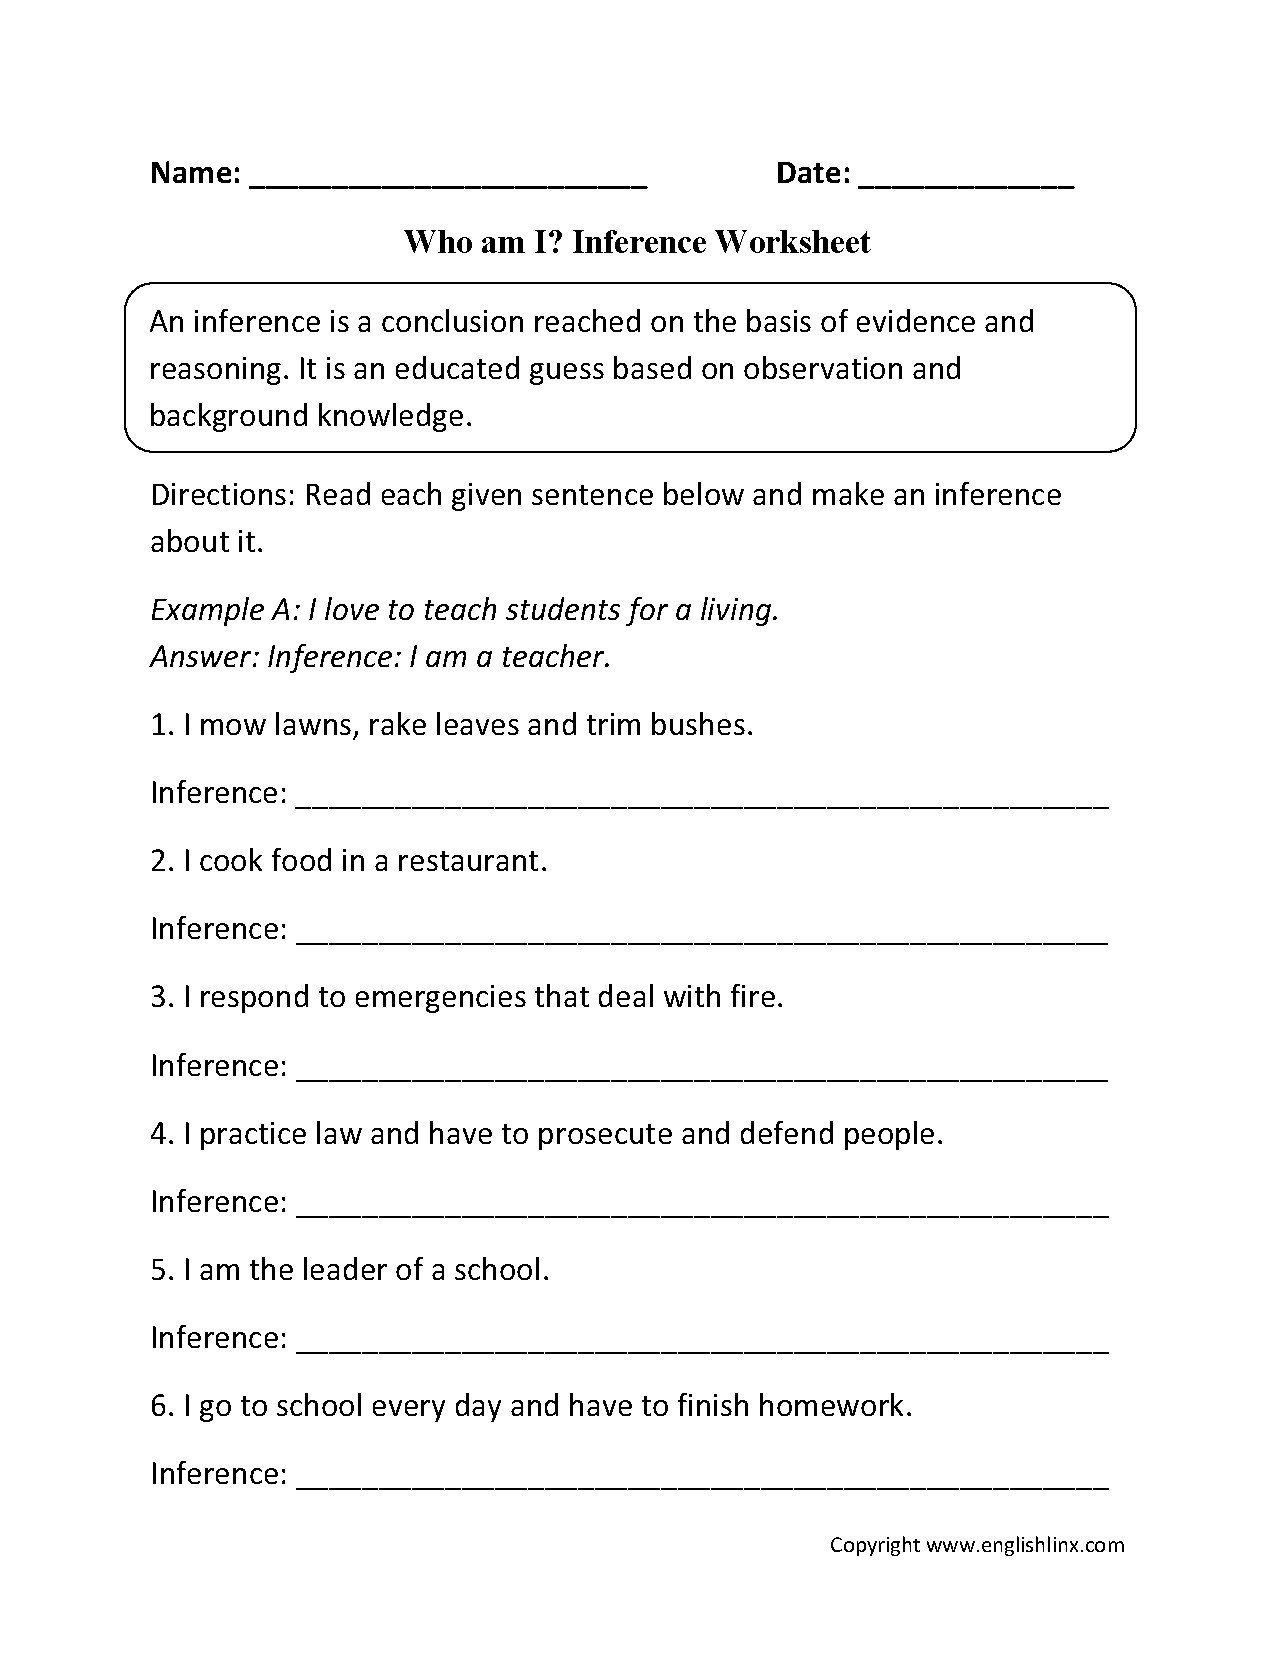 Free Drawing Conclusions Worksheets New Inferences Worksheet High School Inference Inferring Lessons Making Inferences [ 1662 x 1275 Pixel ]